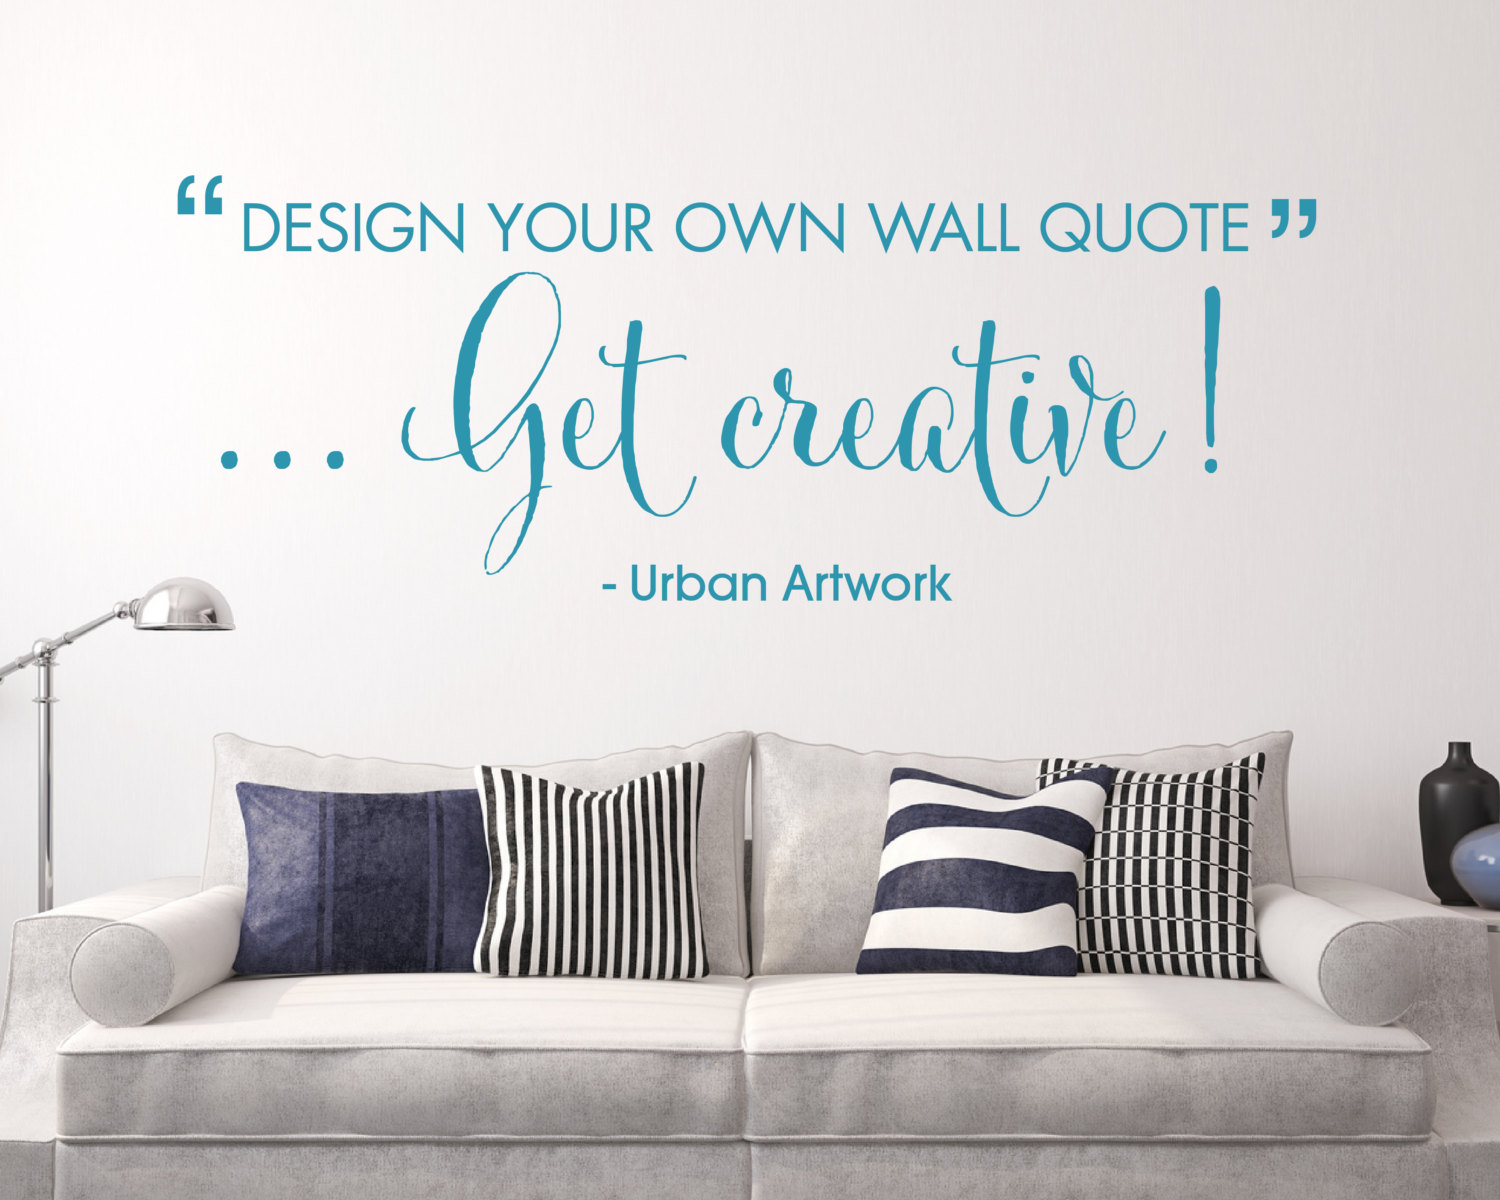 Design Your Own Wall Quote Custom Made Personalised Wall Vinyl